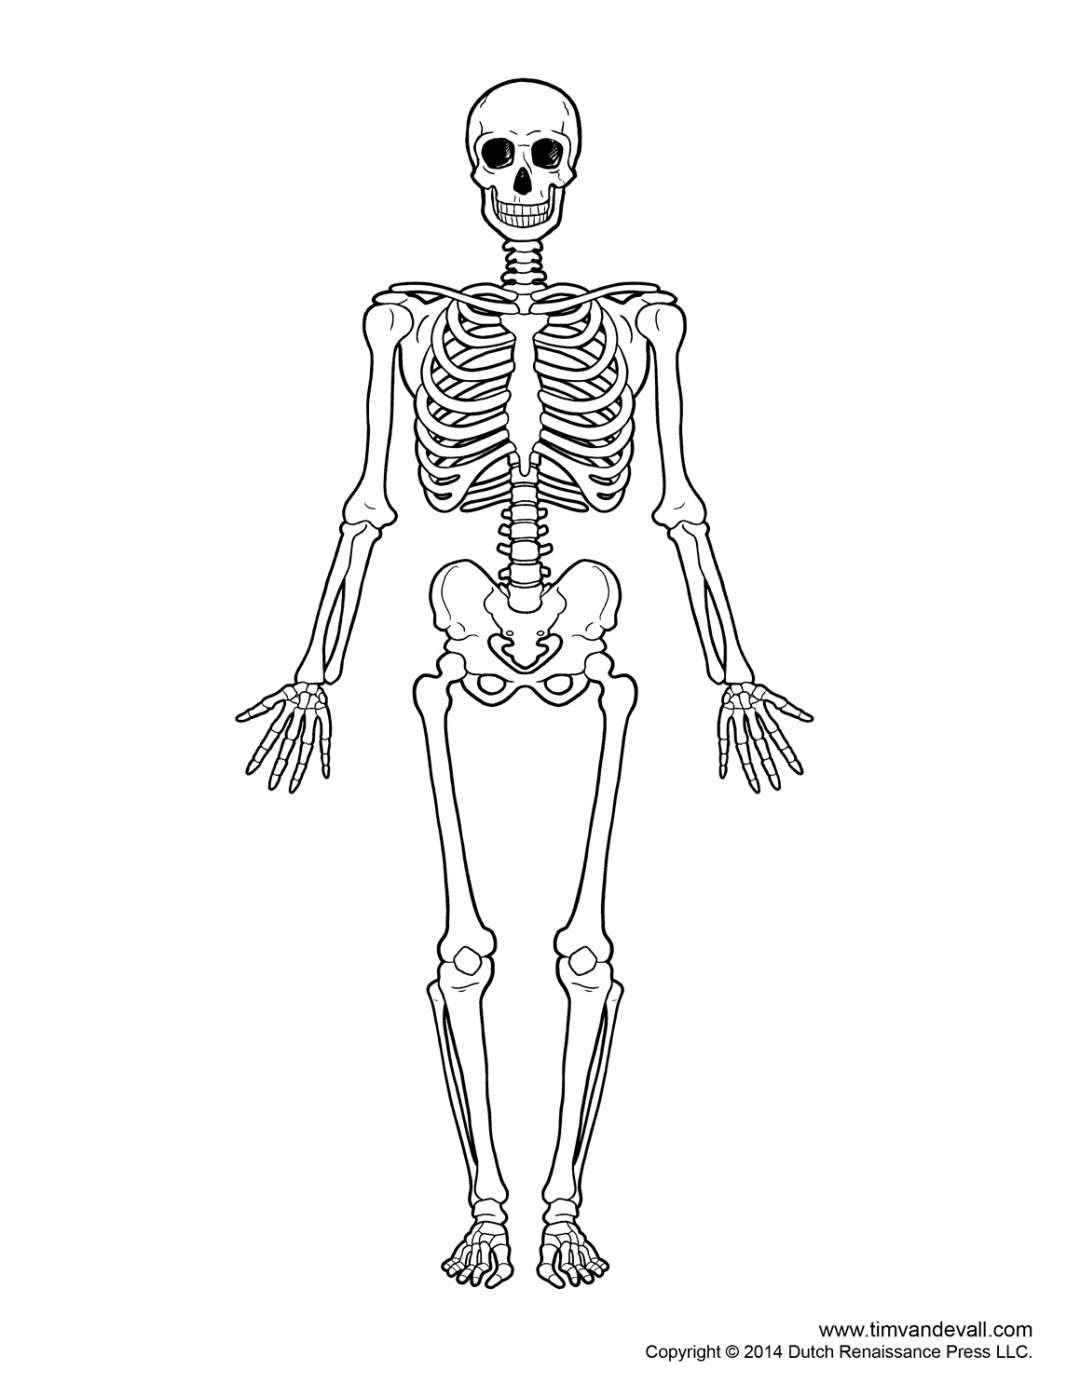 Skeleton Image